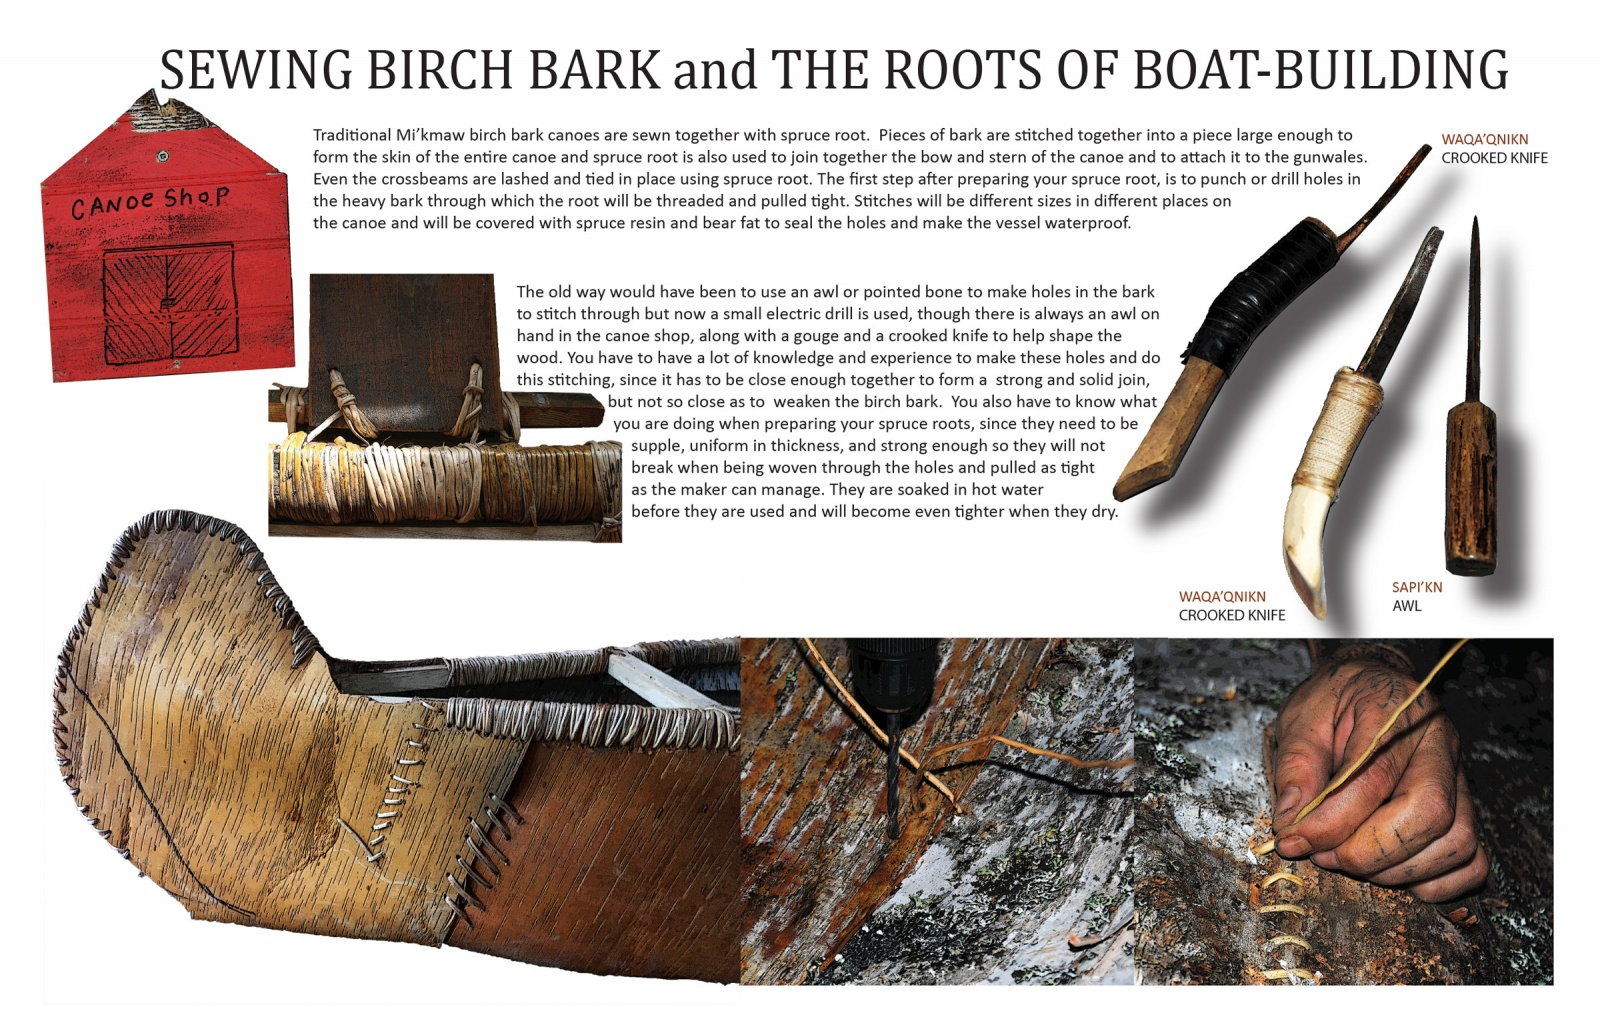 Sewing Birch Bark and the Roots of Boat-building